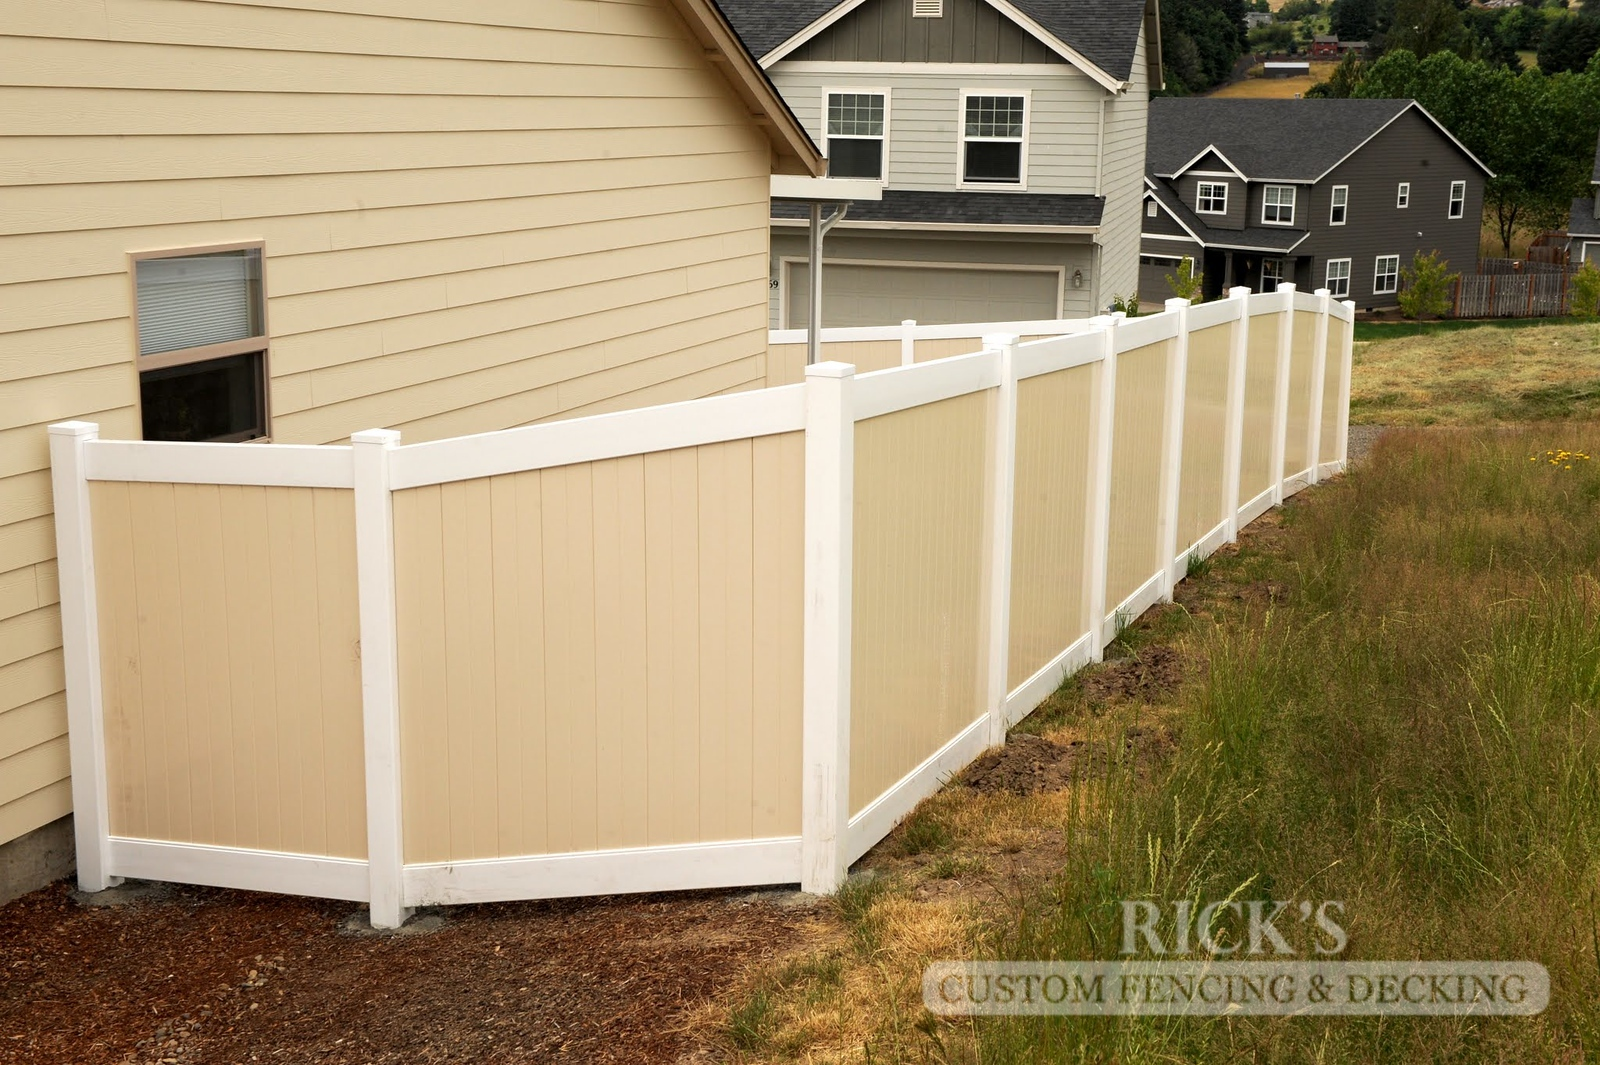 3028 - Vinyl Privacy Fencing